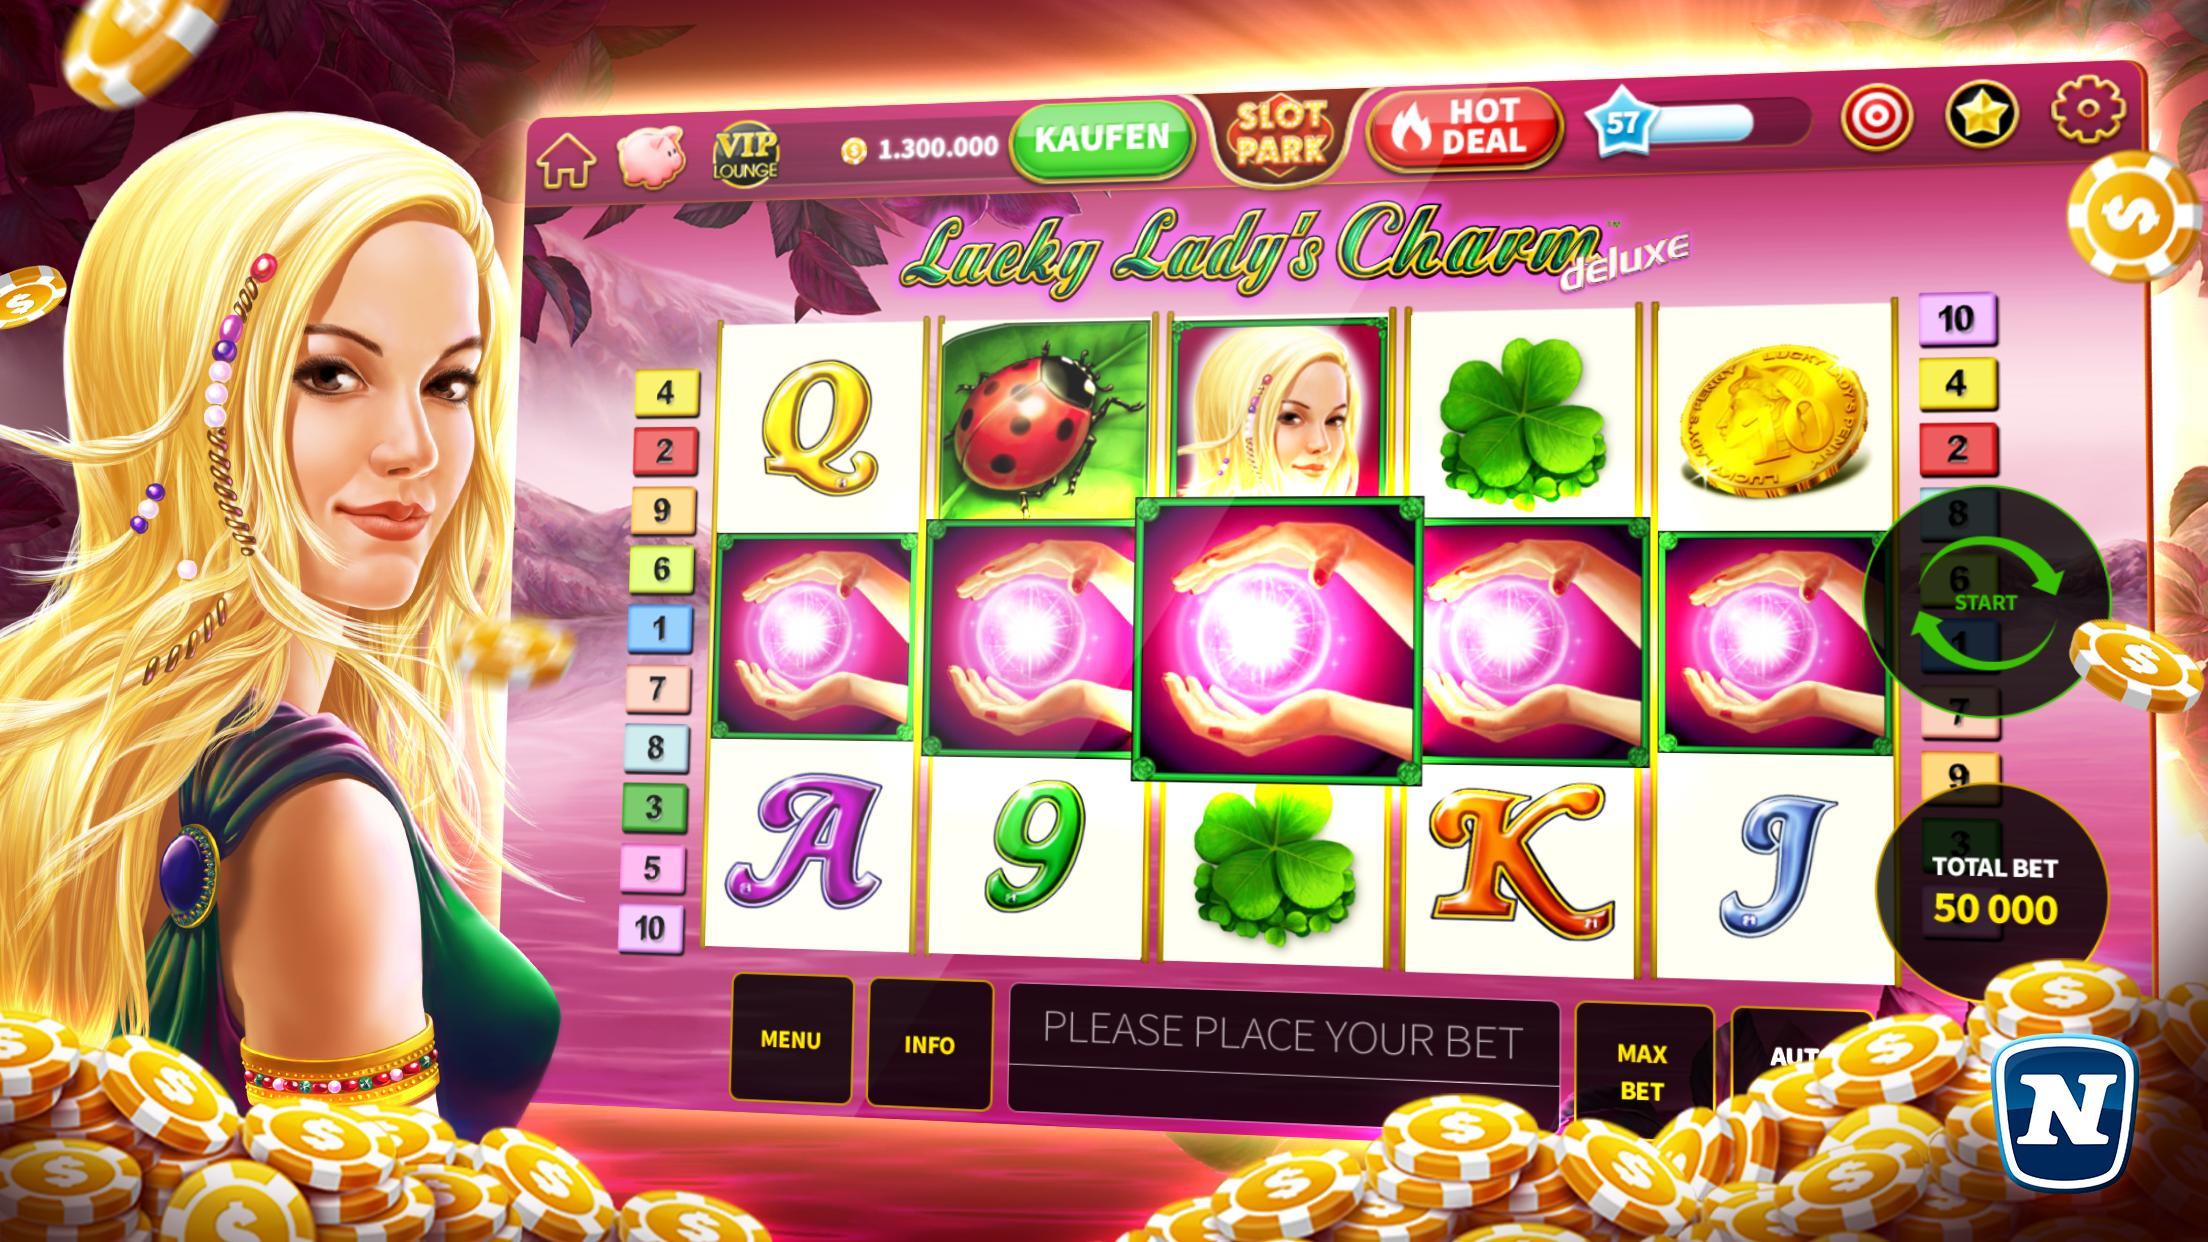 Slotpark Online Casino Games & Free Slot Machine 3.21.1 Screenshot 16